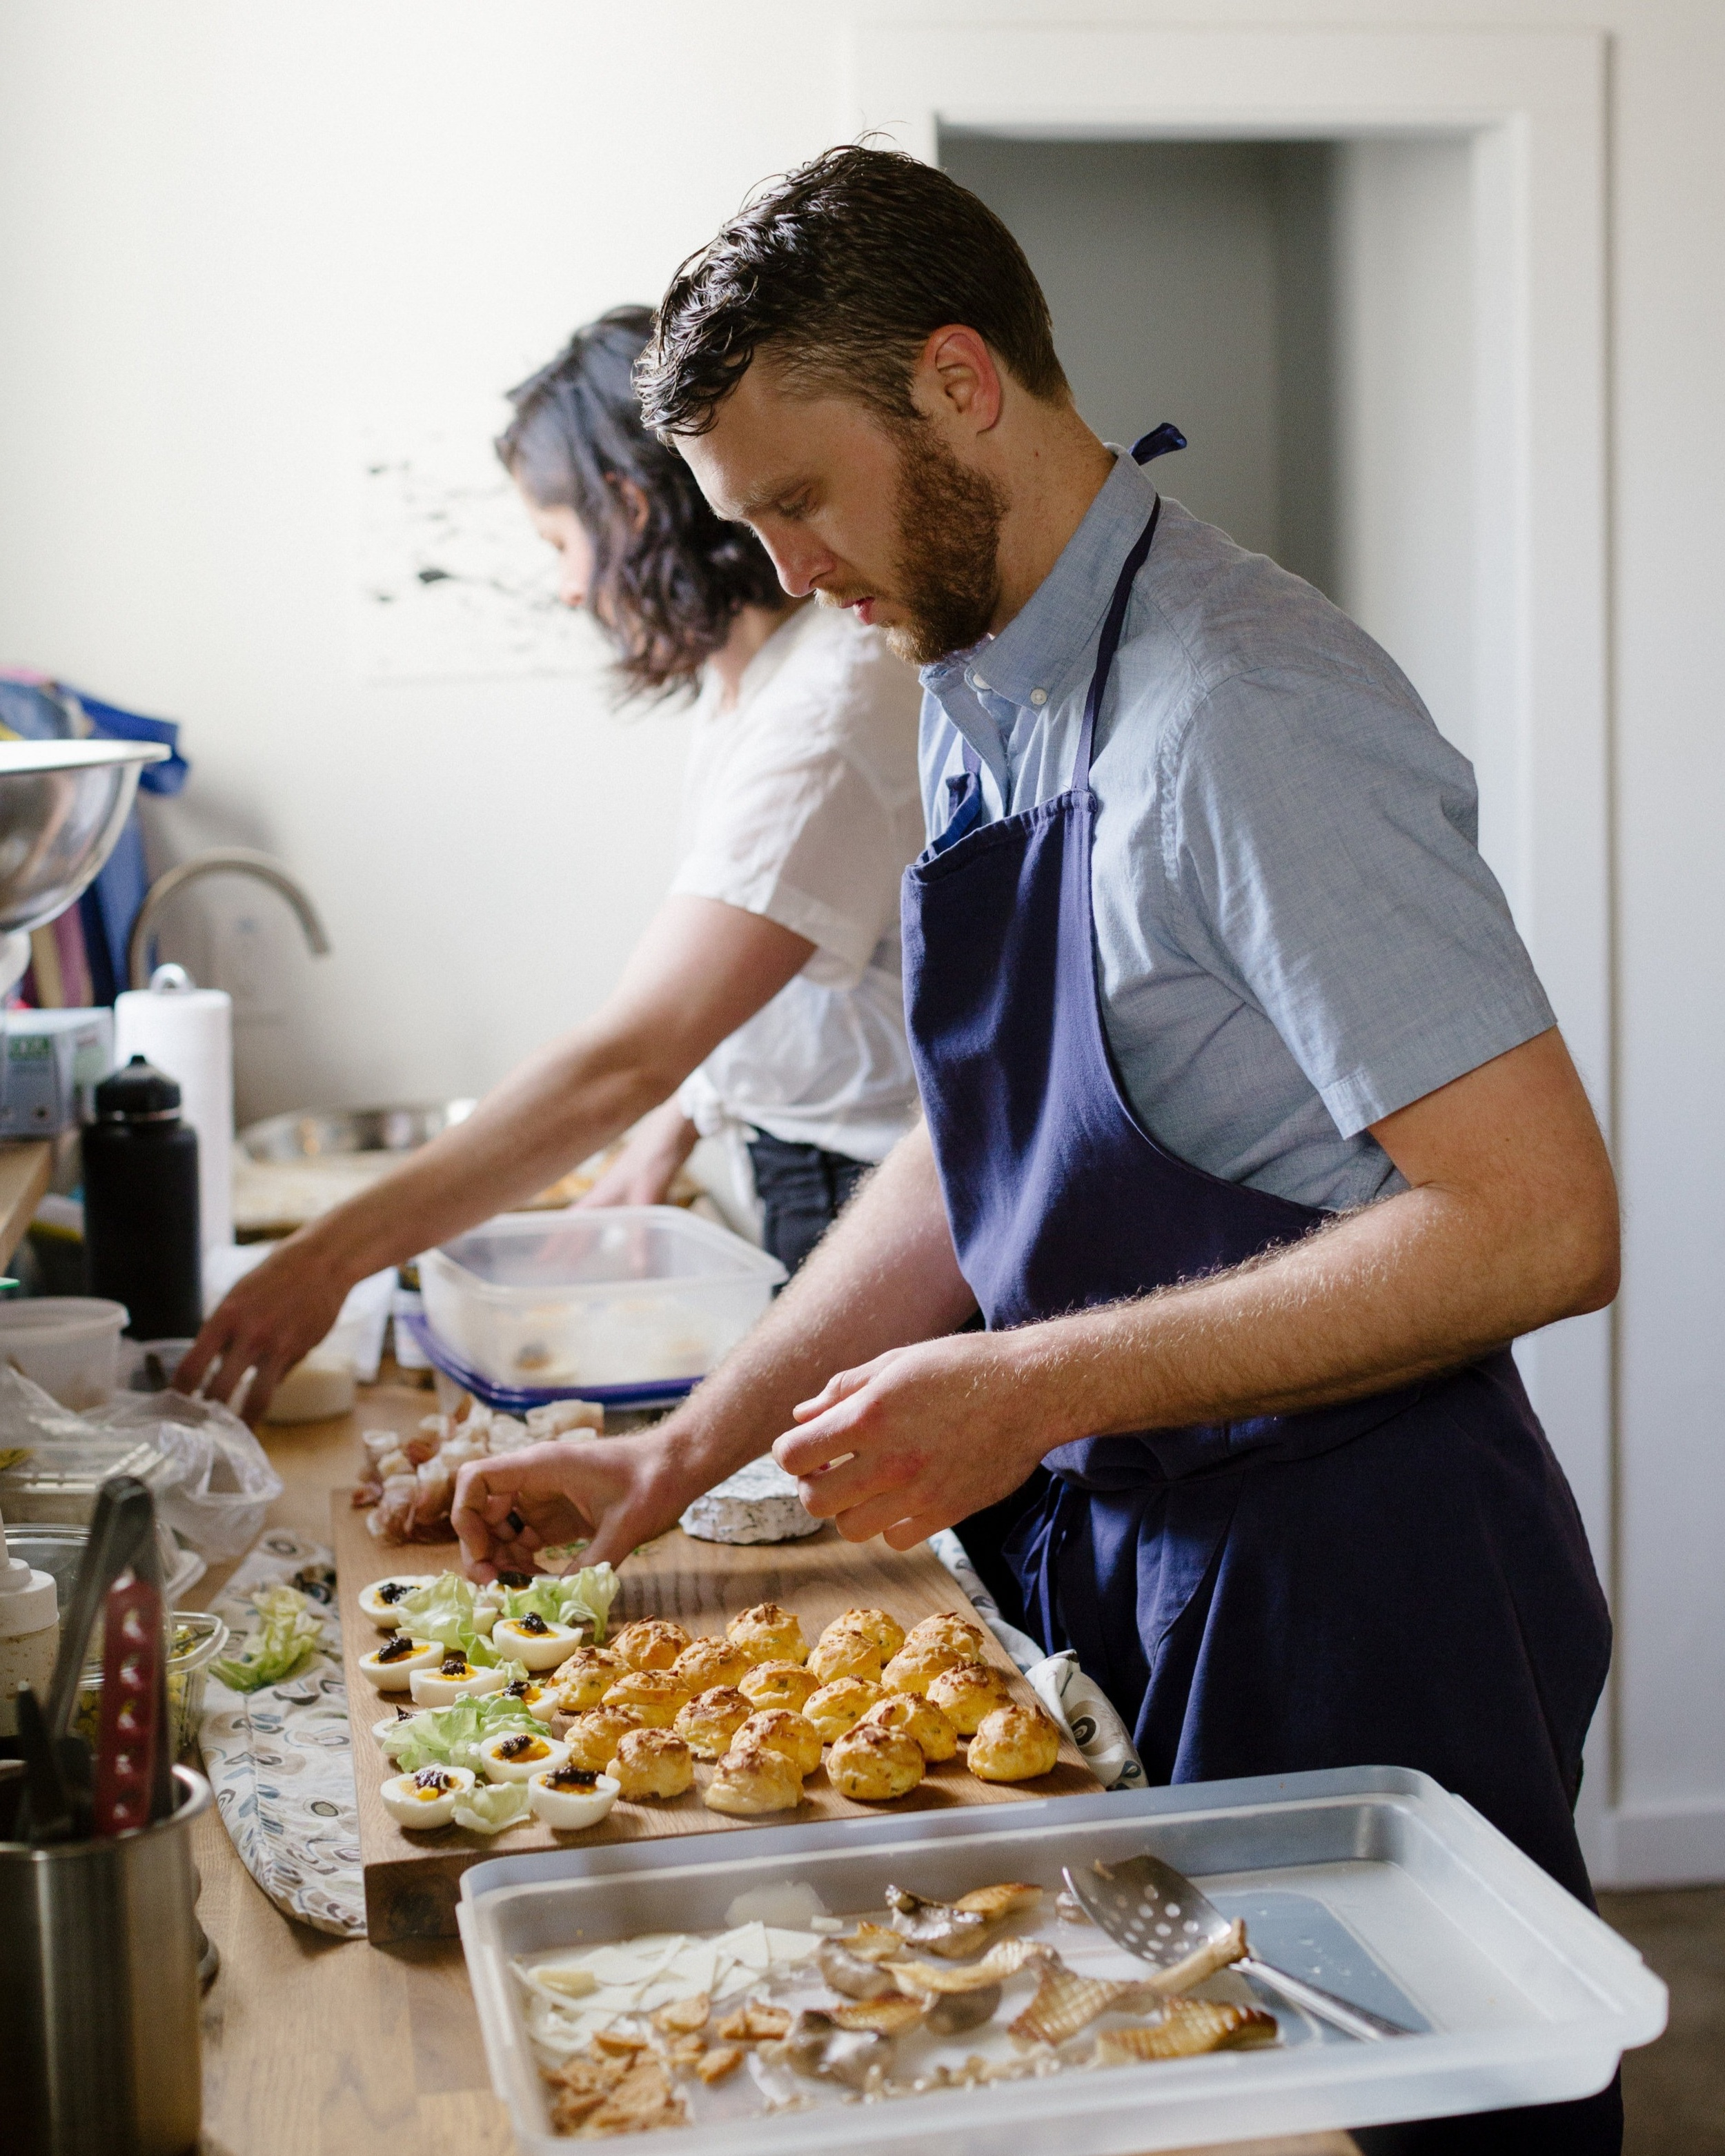 Ollie Honderd - KitchenOllie caught the cooking bug while traveling in the French countryside, and worked in restaurant kitchens throughout his 20's—everything from barbecue to fine-dining, pasta, and sashimi. Now he applies his trained palate and classy-simple-farmy ethos to our seasonal menus and spreads.